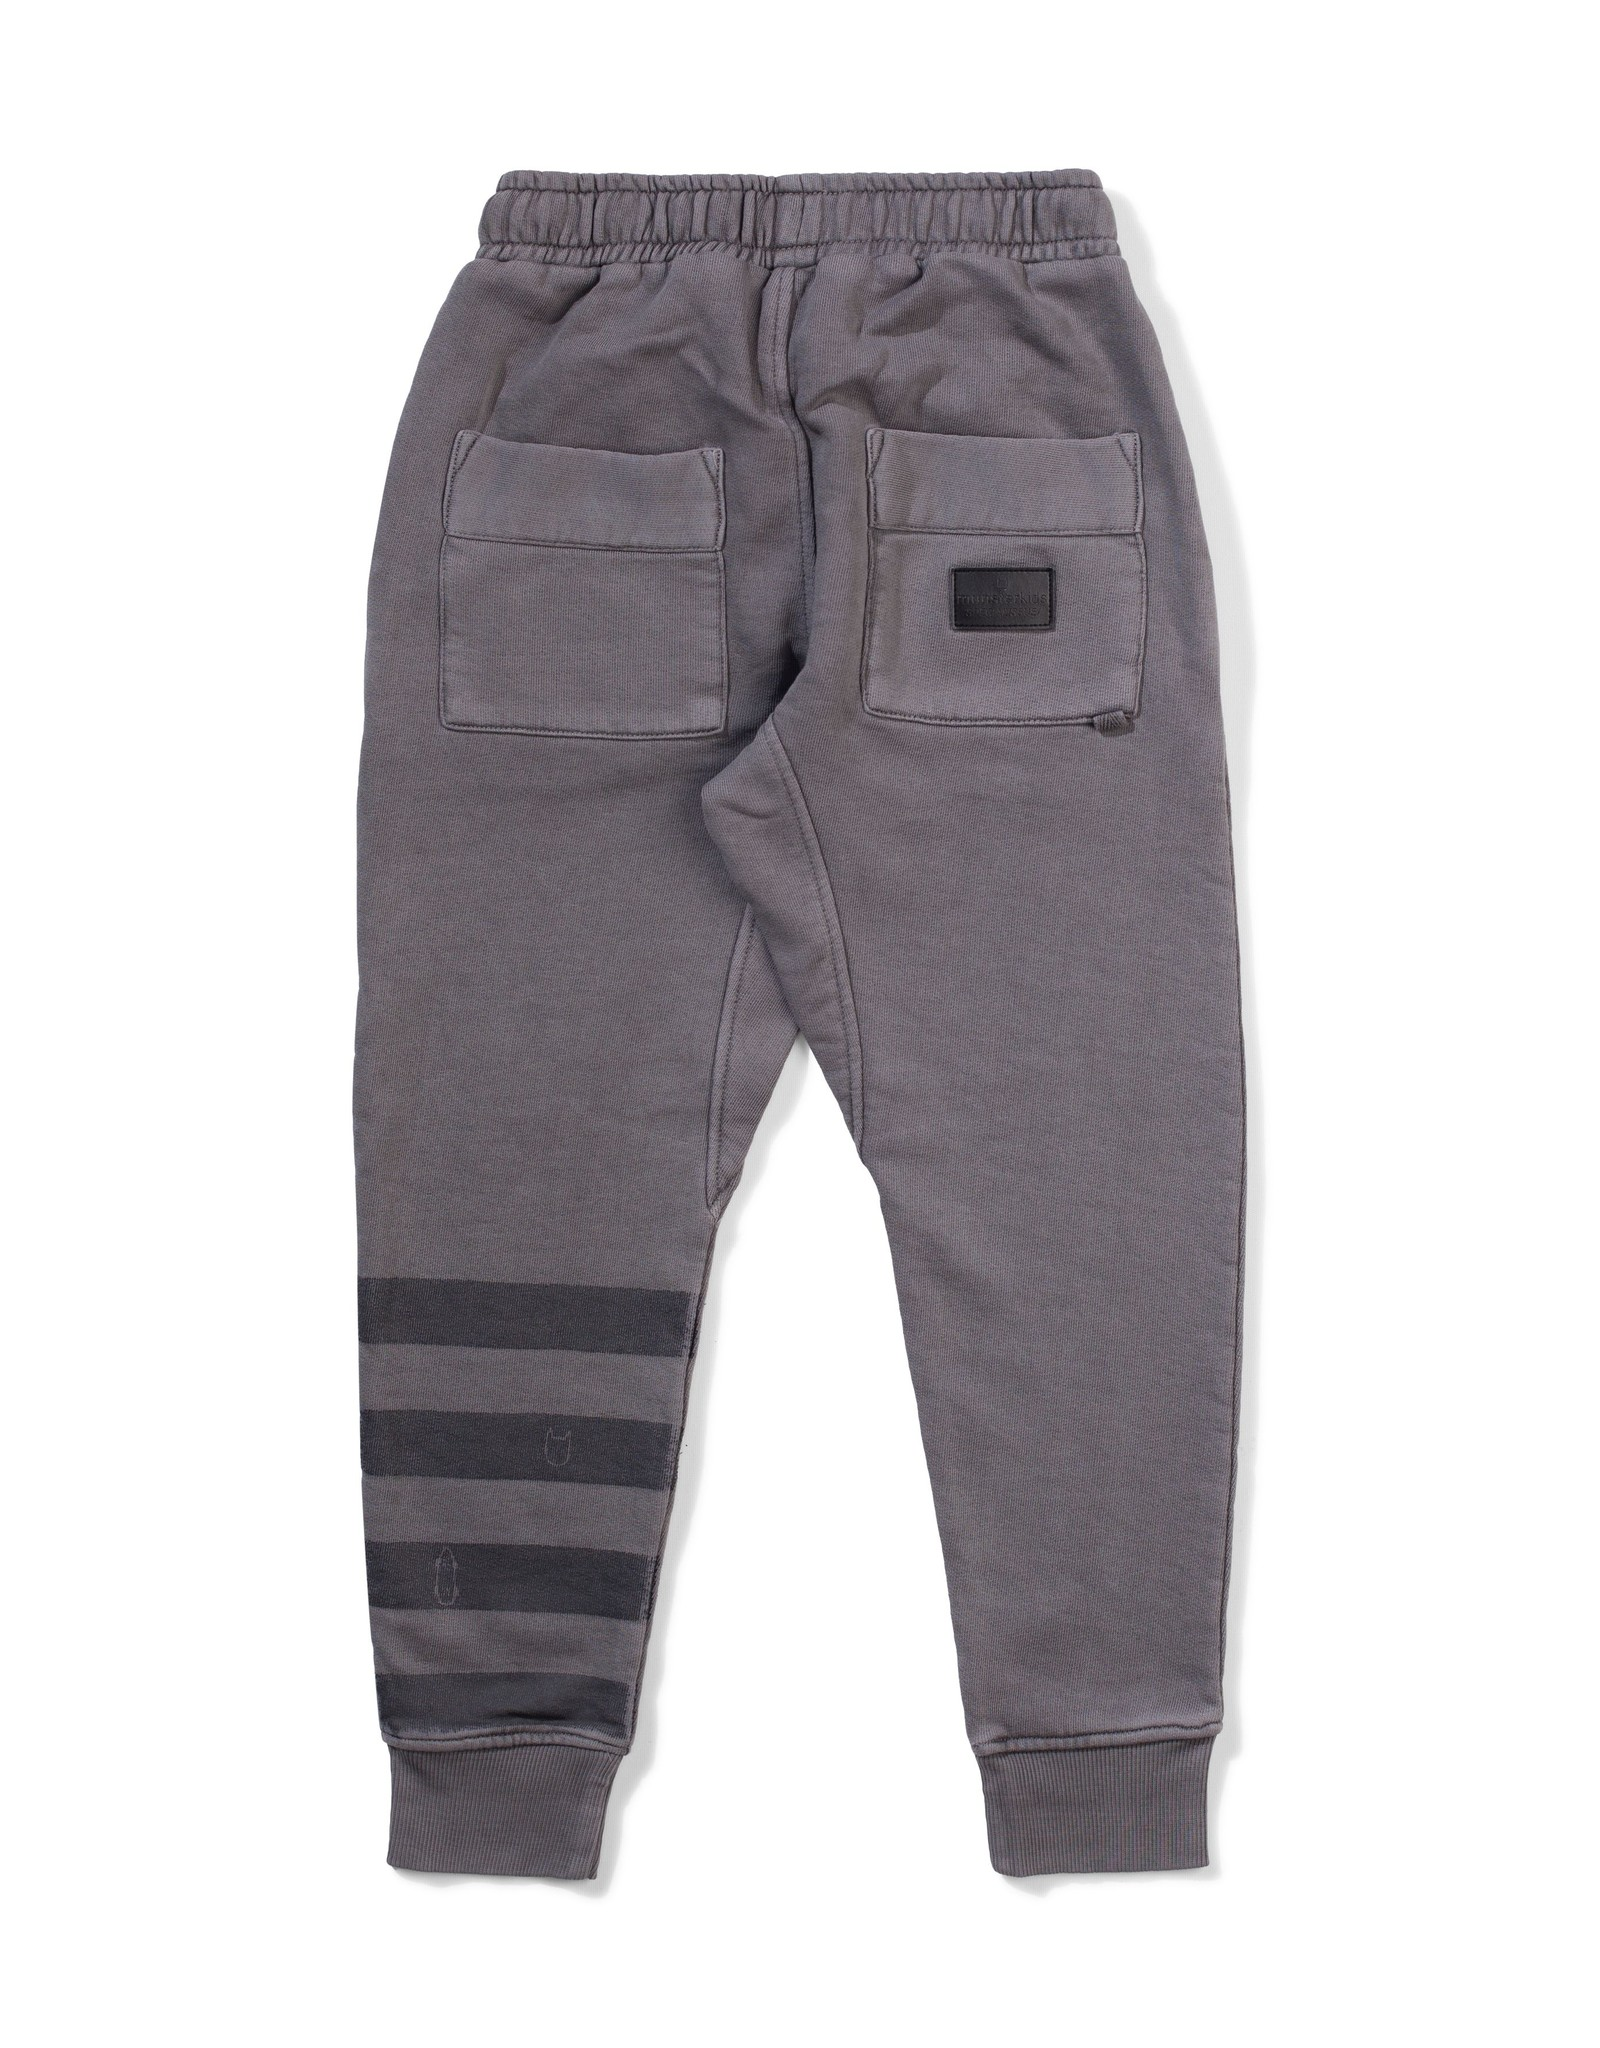 Munster Kids sundays pant- washed charcoal